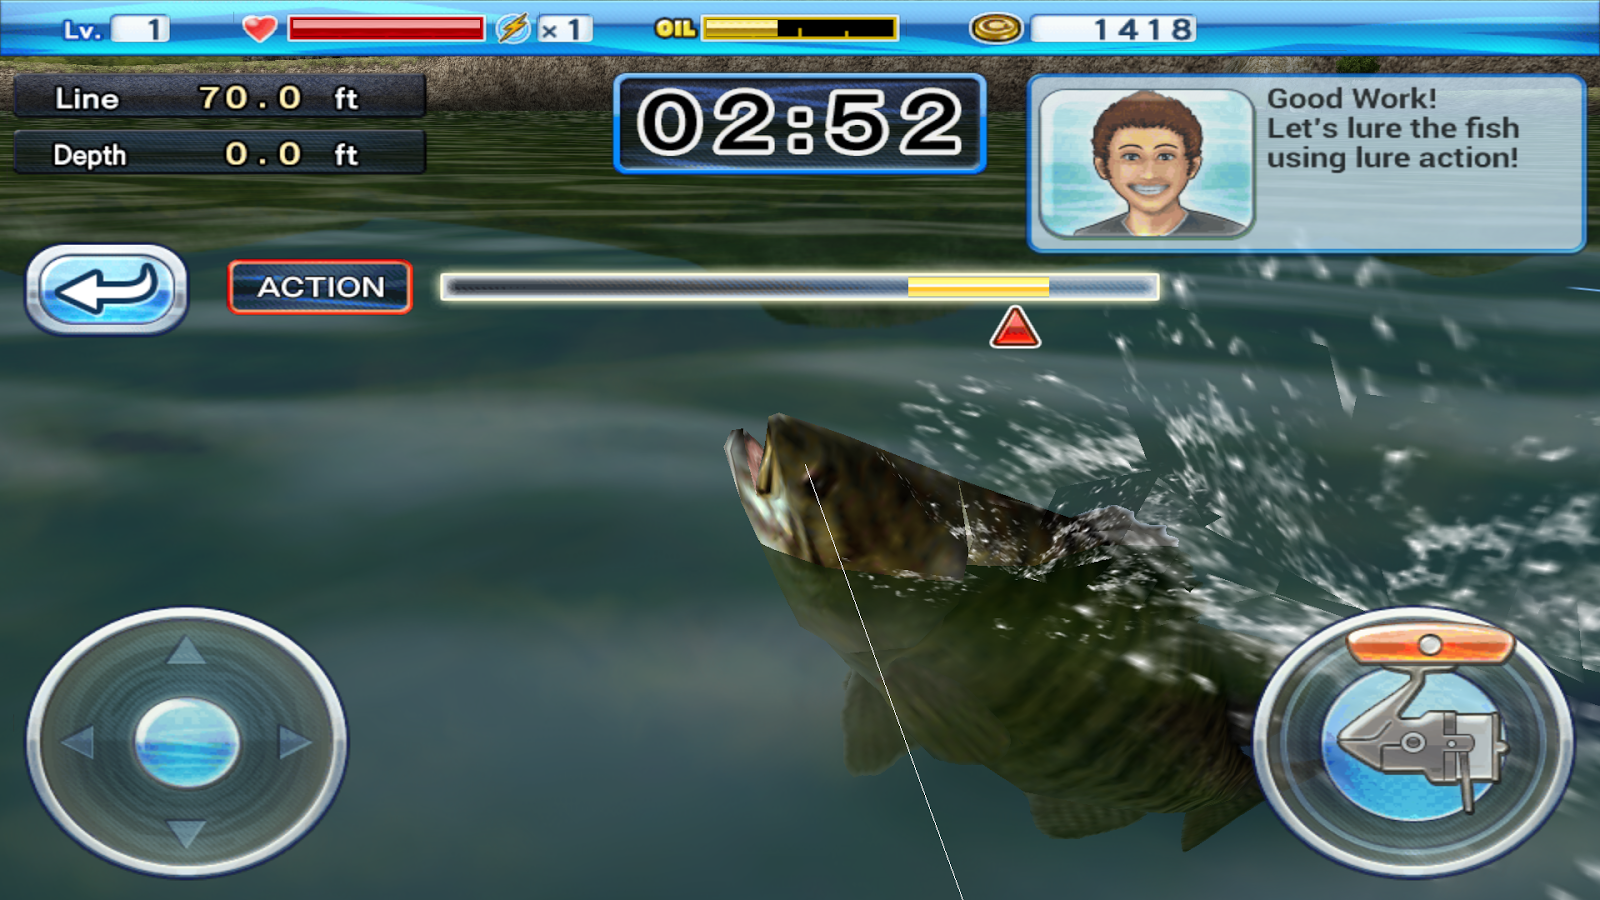 Bass 39 n 39 guide lure fishing screenshot for Bass fishing apps